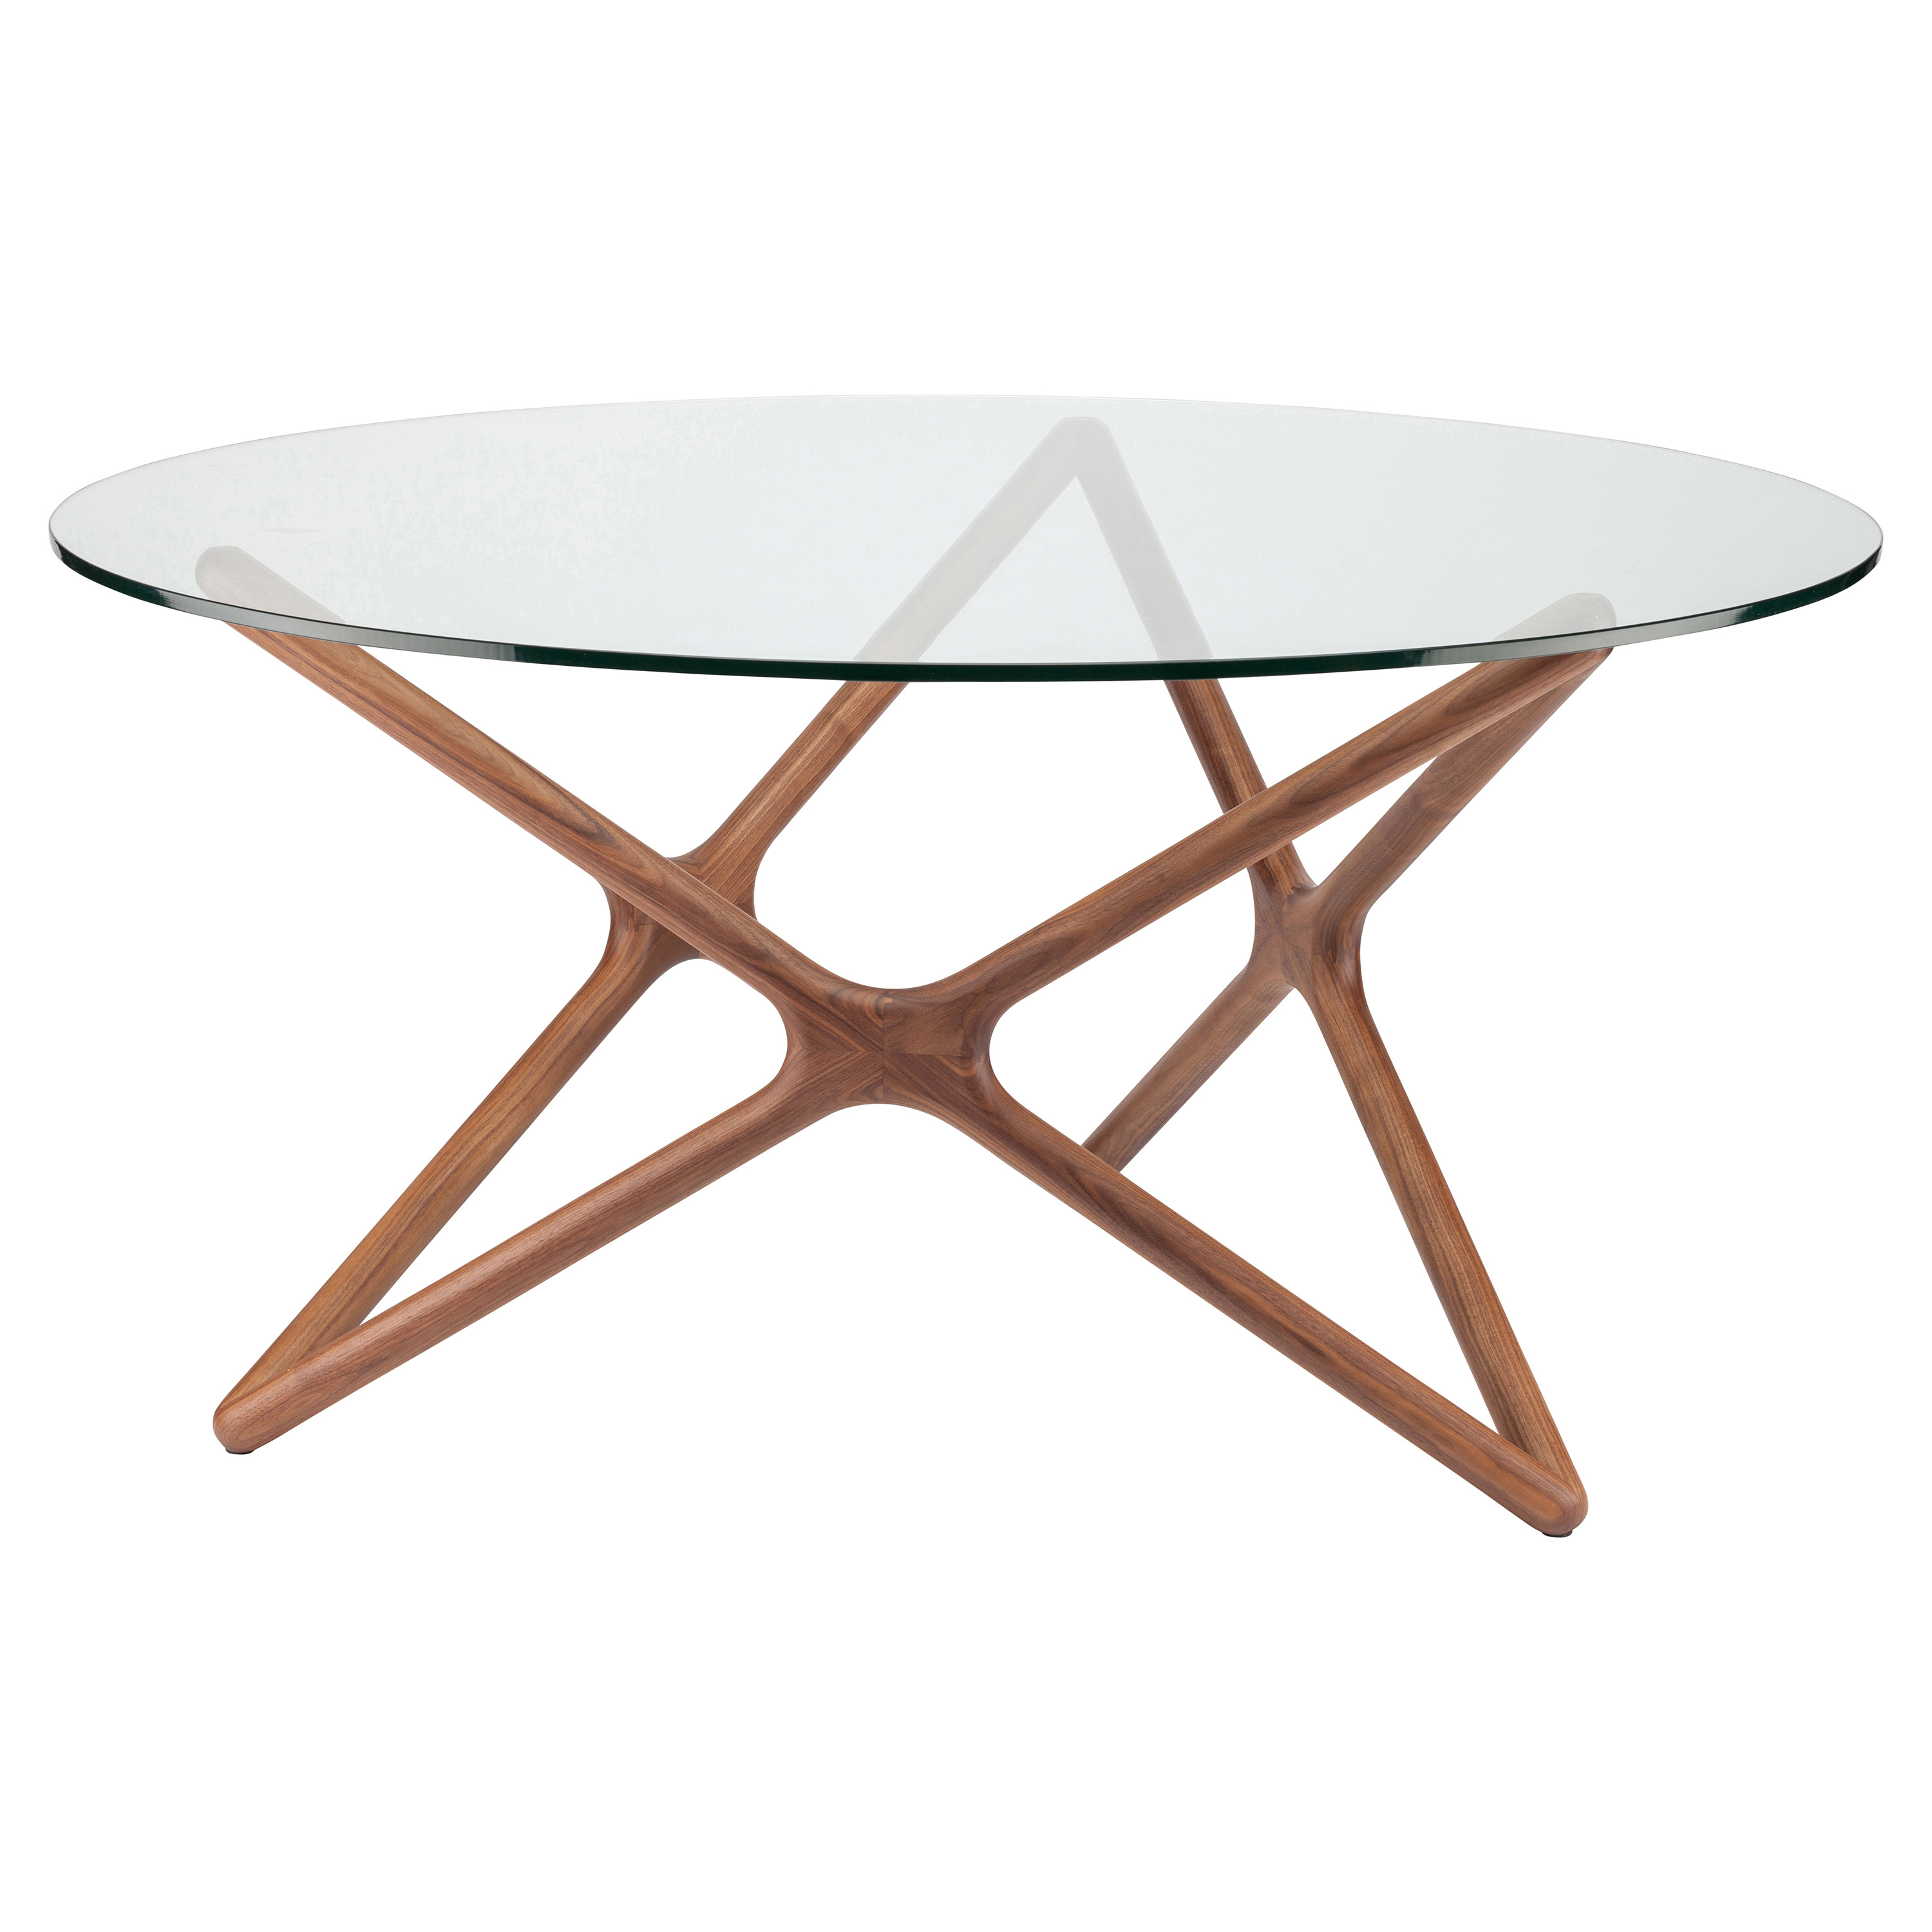 Centauri Modern Glass Top Wood Mid Century Dining Table - 40D